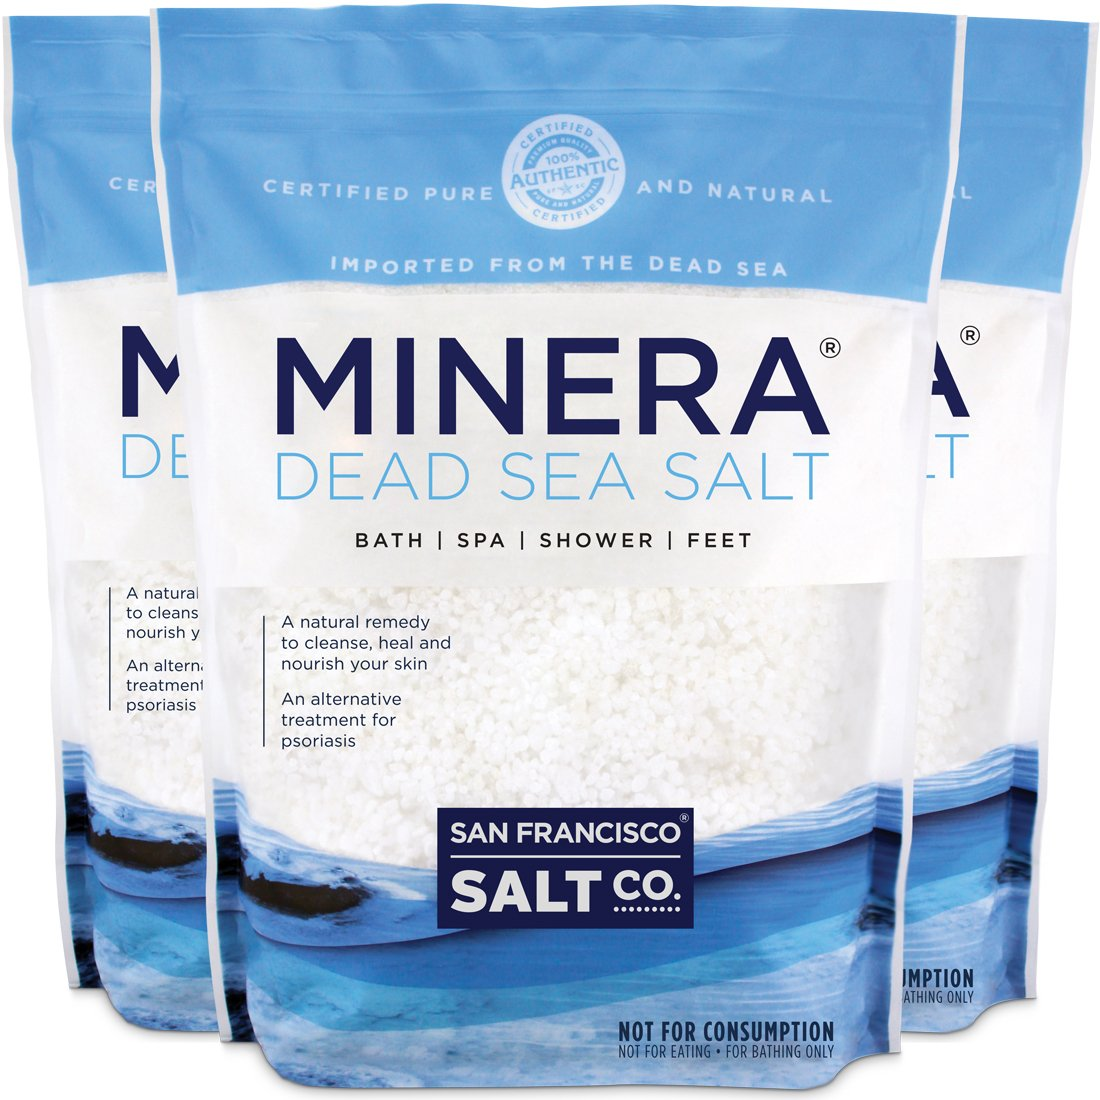 Minera Dead Sea Salt, 60 lbs. Coarse Grain (Qty 3, 20 lb. Bags) Bath and Mineral Salt - 100% Pure and Certified Natural Treatment for Psoriasis, Eczema, Acne and More